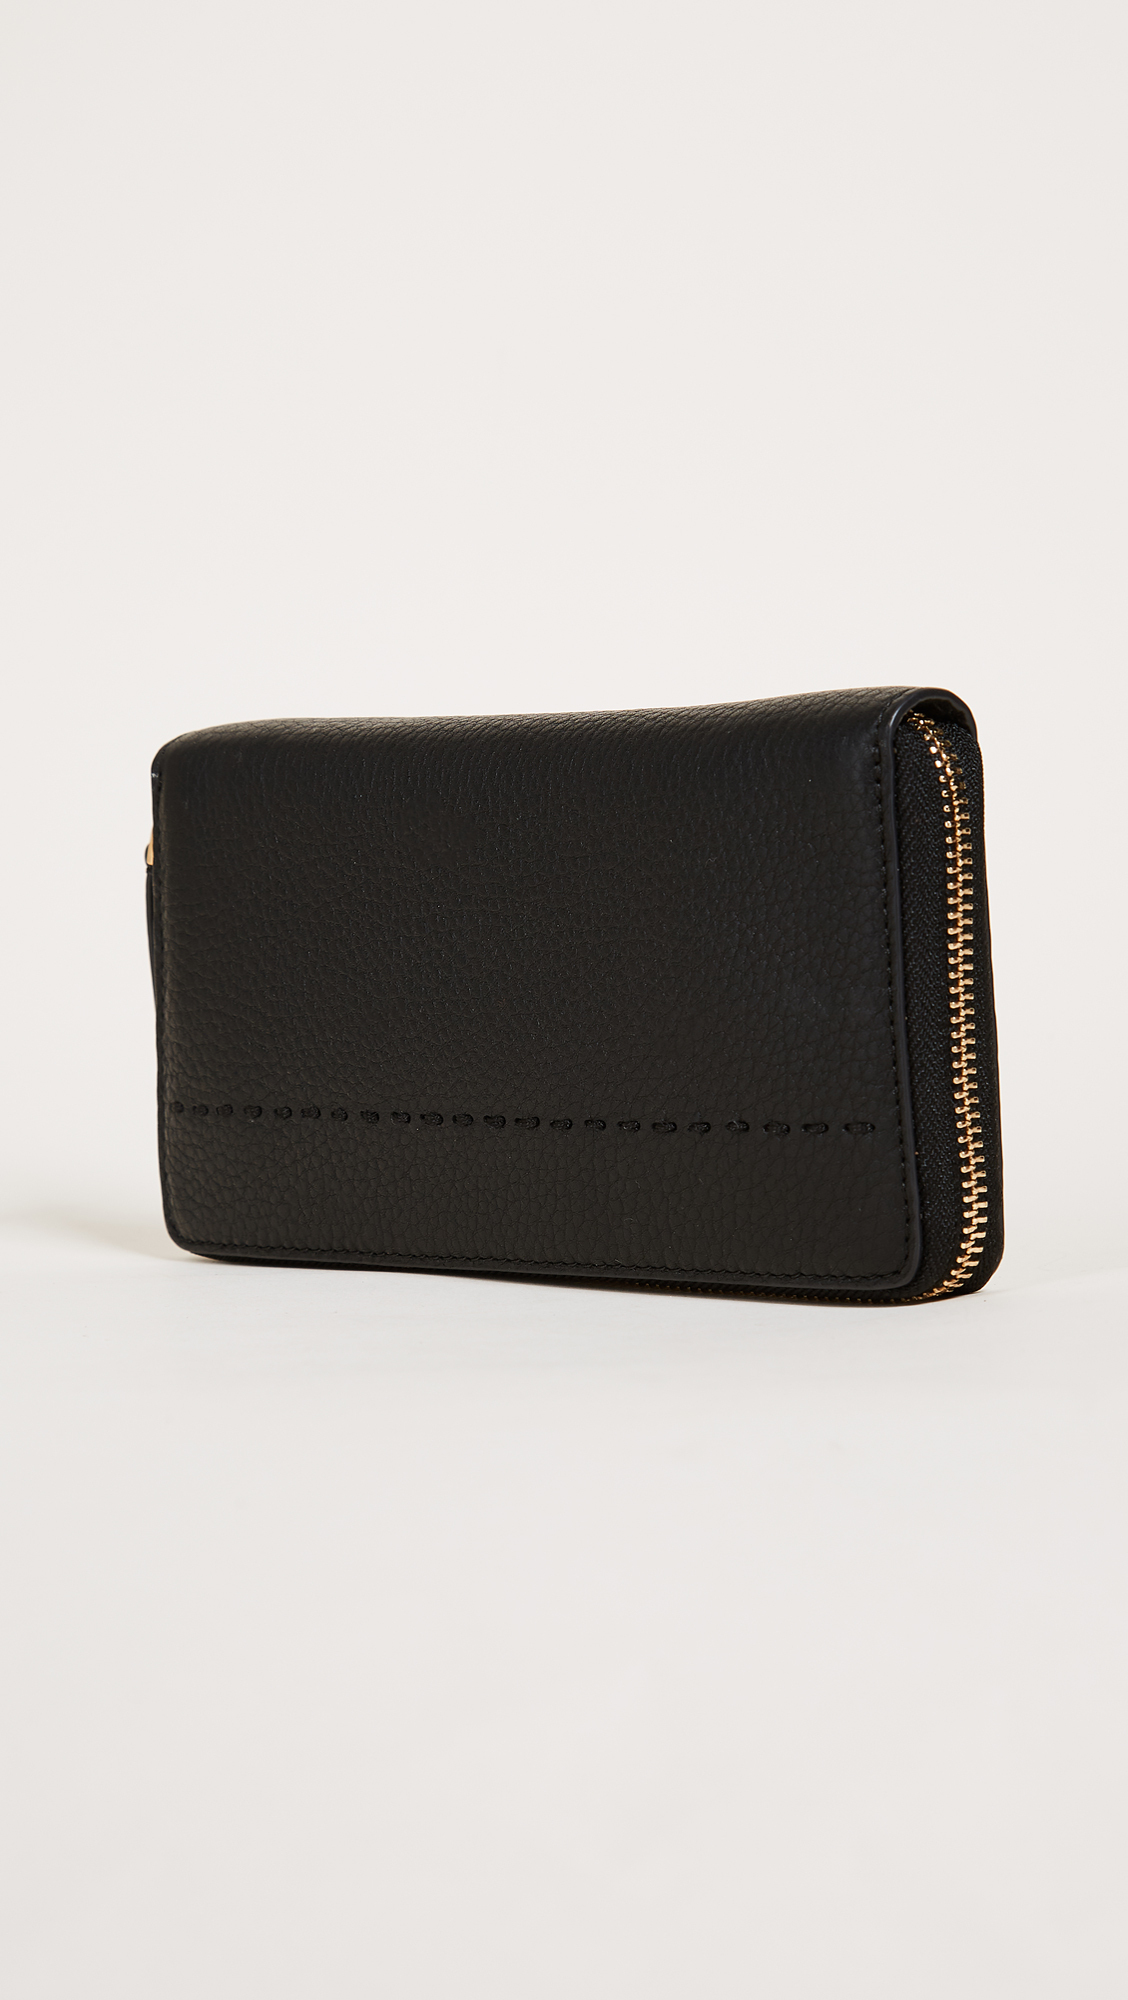 トリーバーチ Mcgraw Zip Continental Wallet 財布